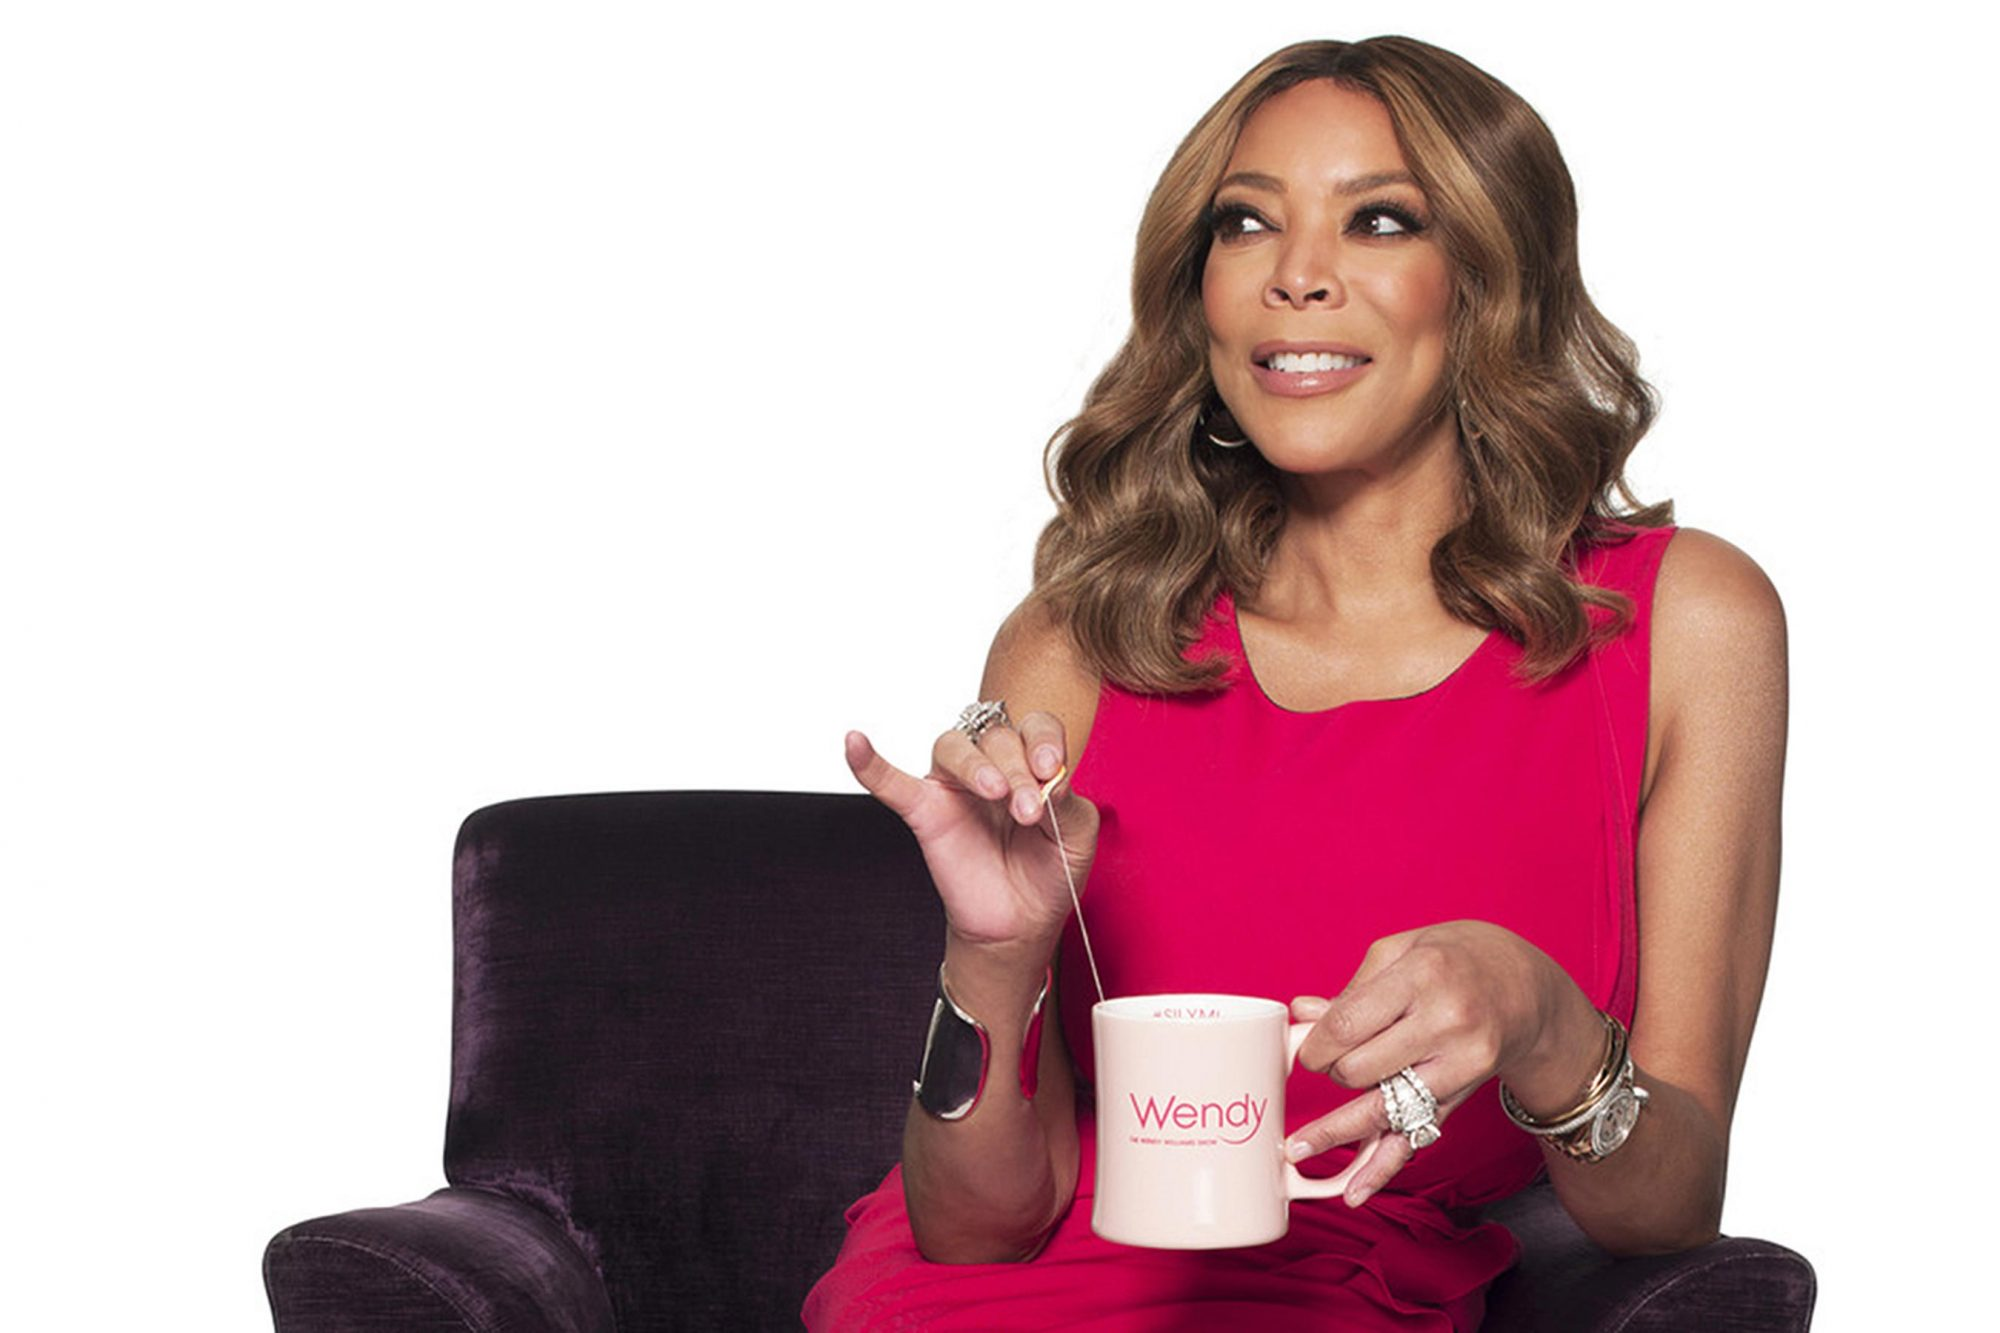 Wendy WilliamsCredit: The Wendy Williams Show